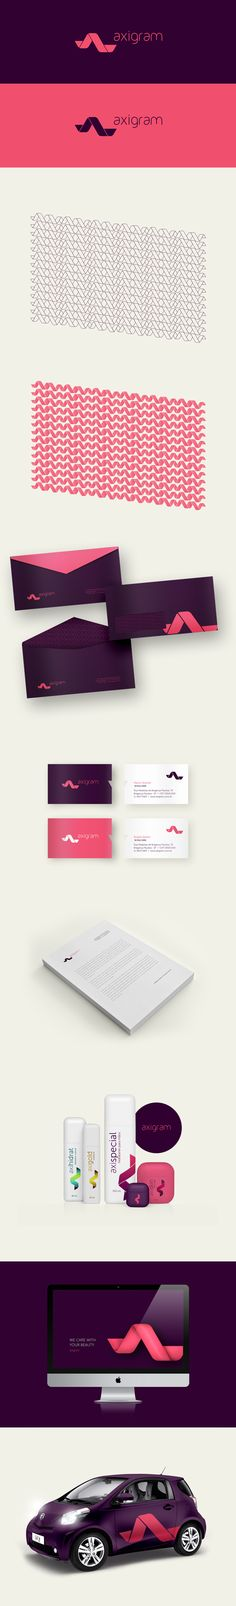 Axigram Branding by Douglas Marchiori, via Behance